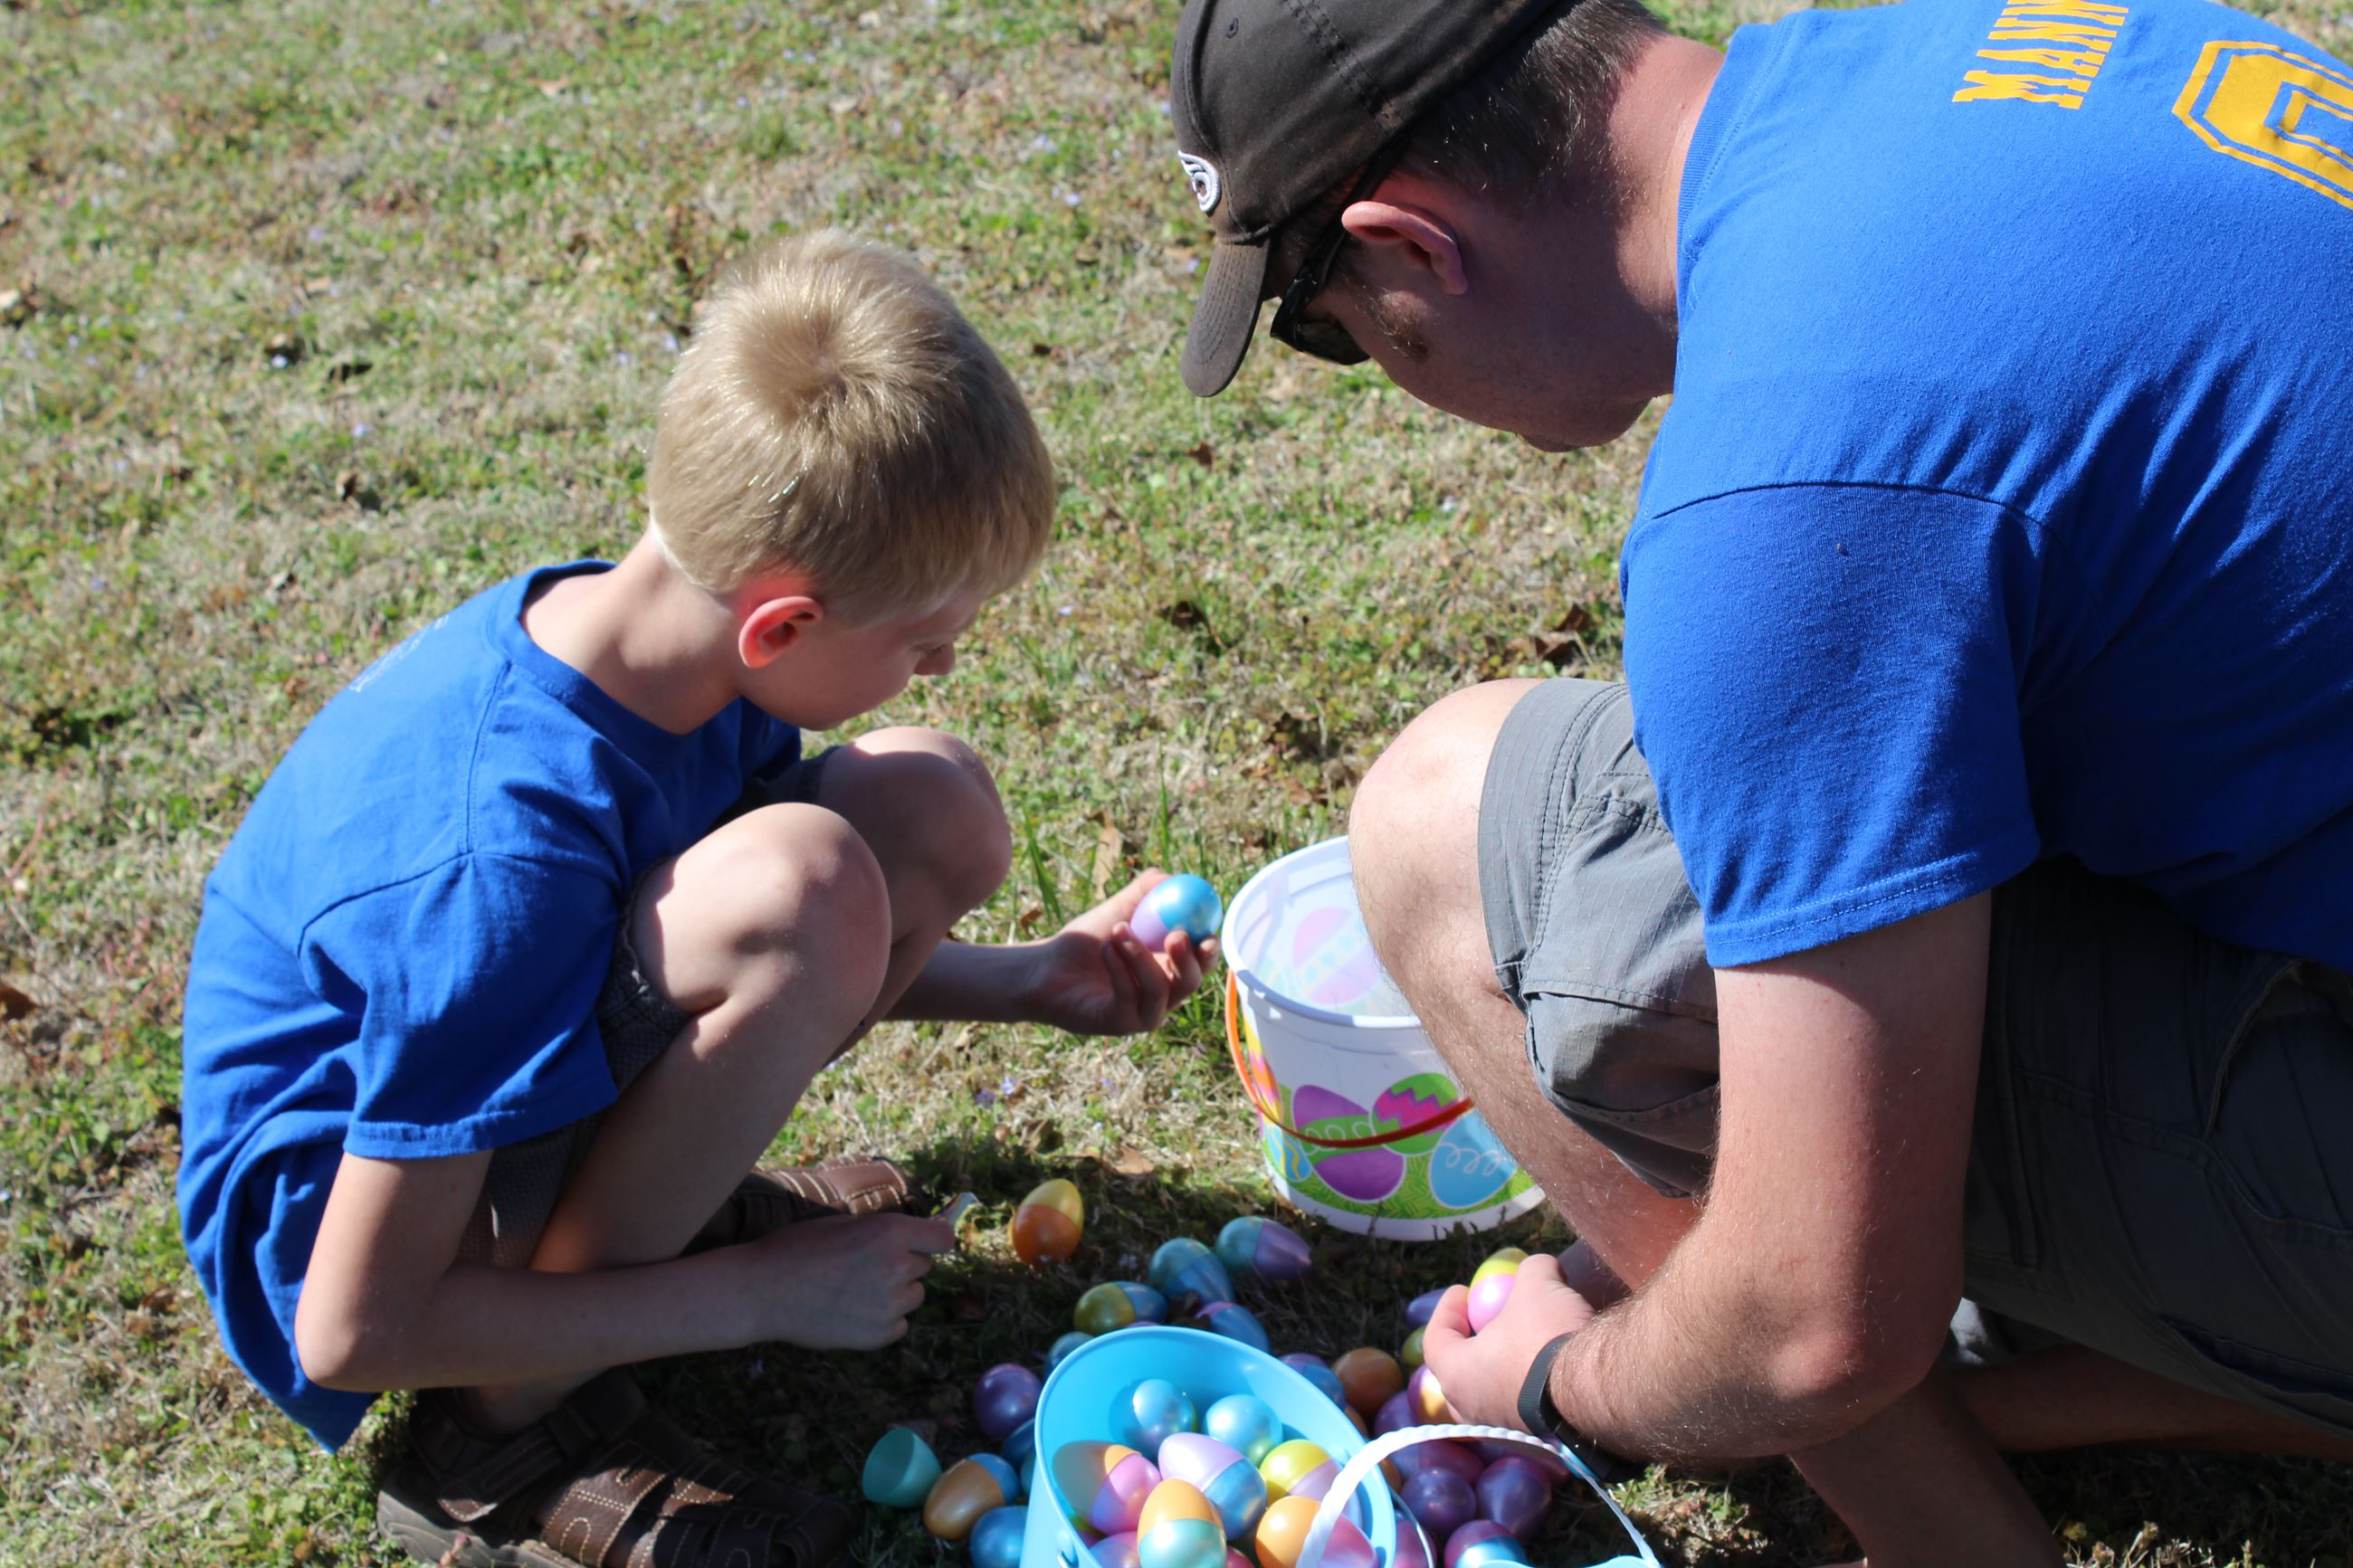 Easter Egg Hunt - A boy and father crouching and taking stock of easter eggs collected